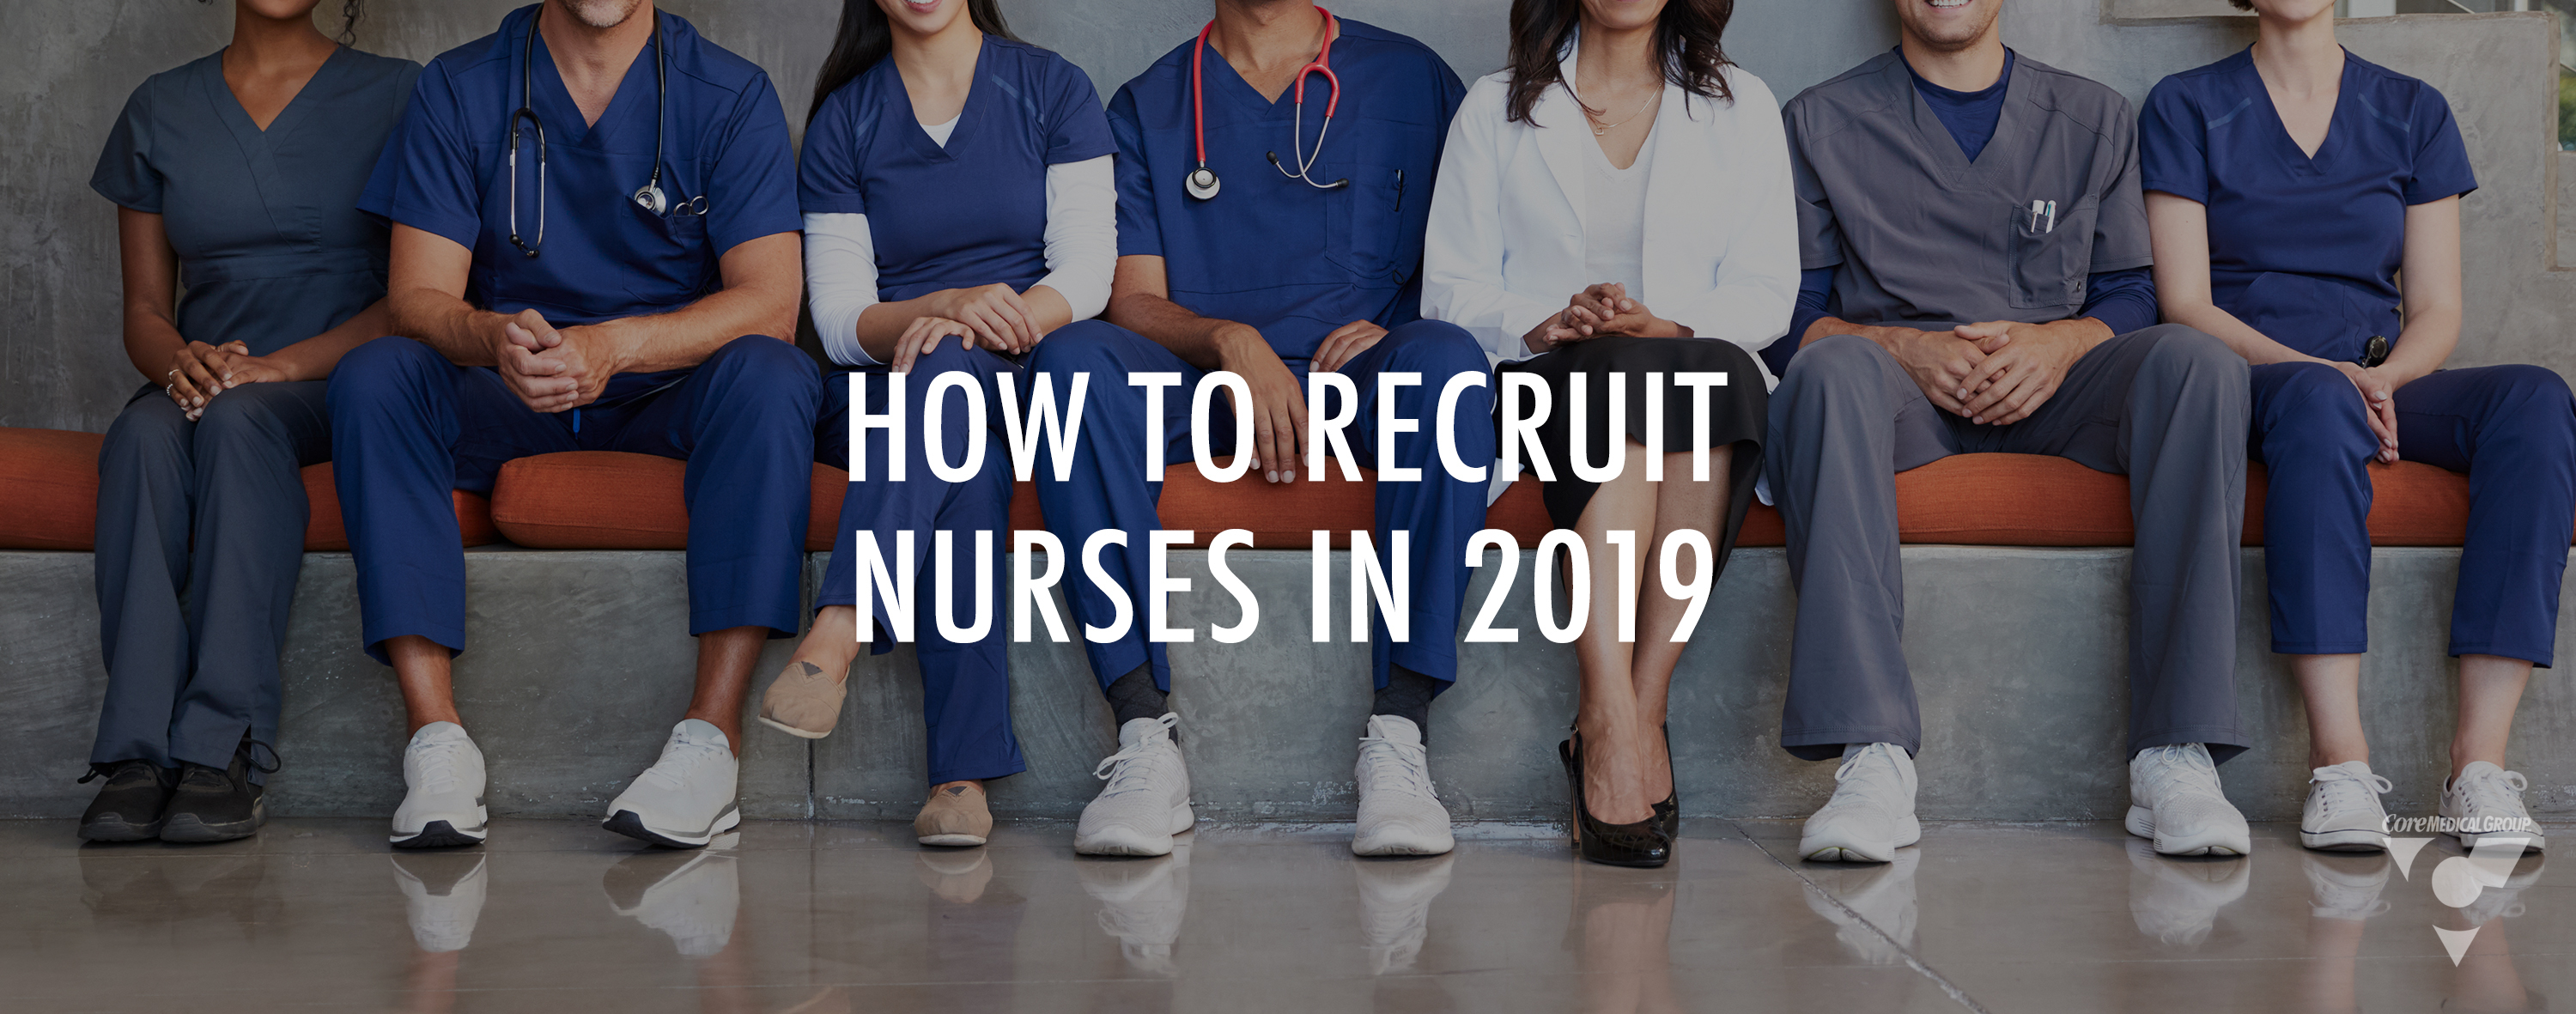 Recruiting Nurses in 2019 Core Medical Group